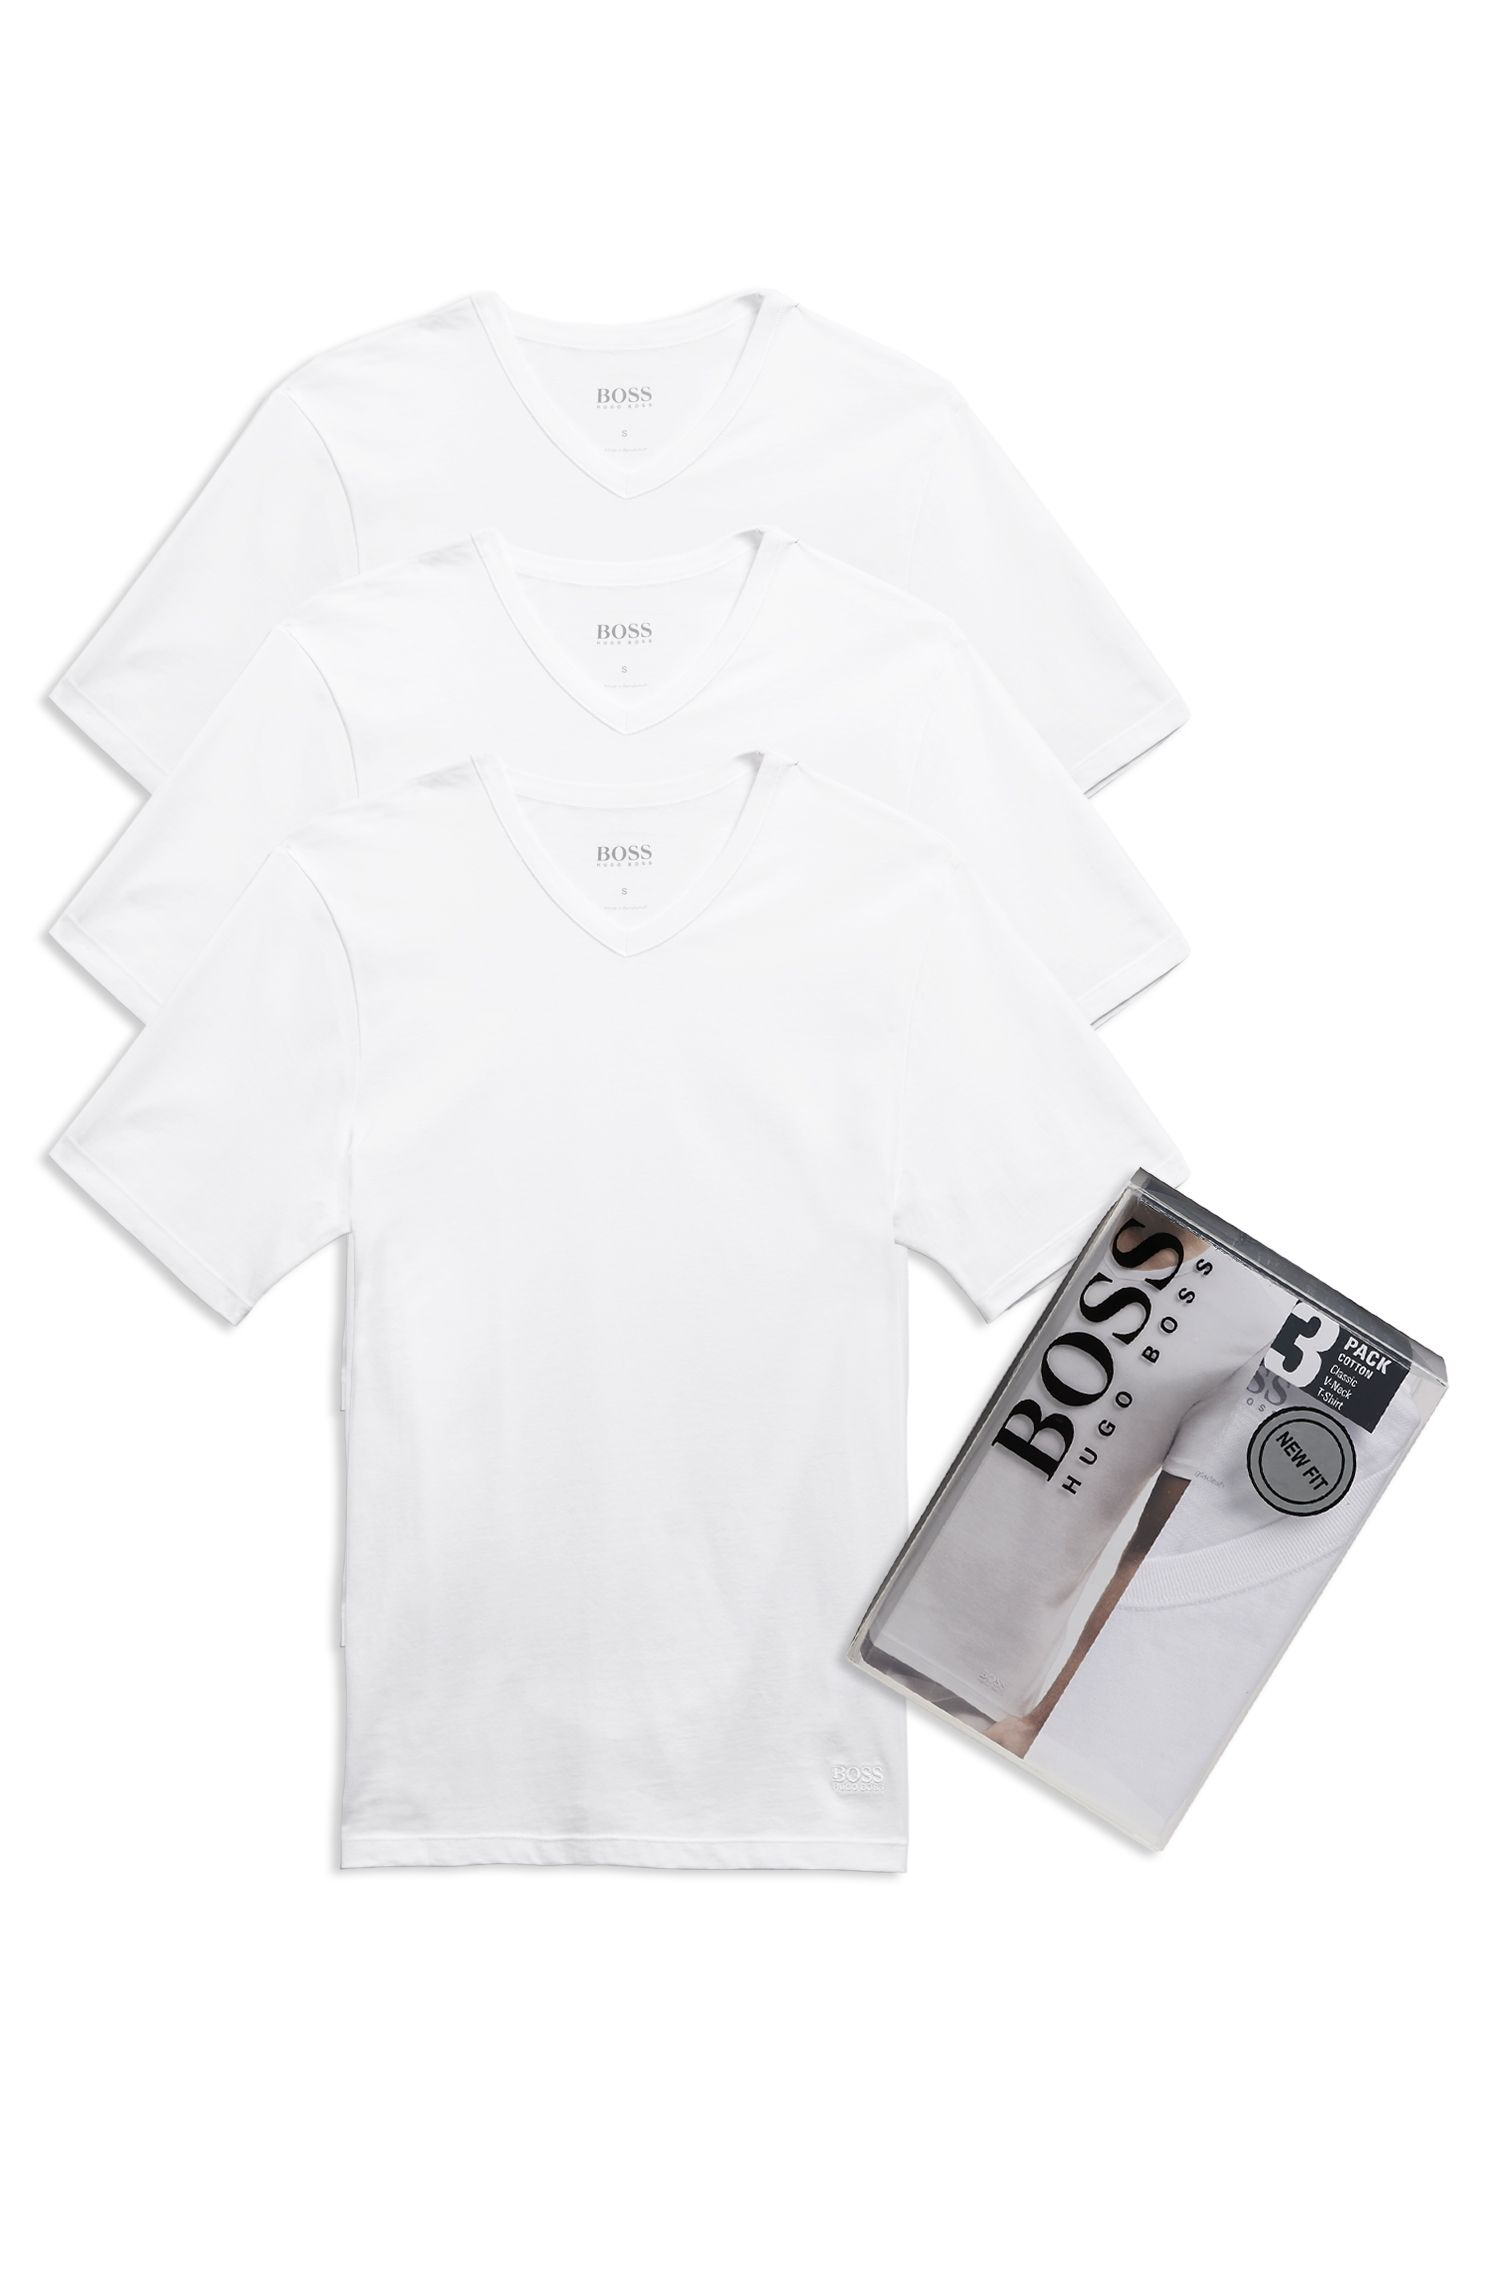 'Shirt' | Cotton V-Neck Undershirt, 3-Pack